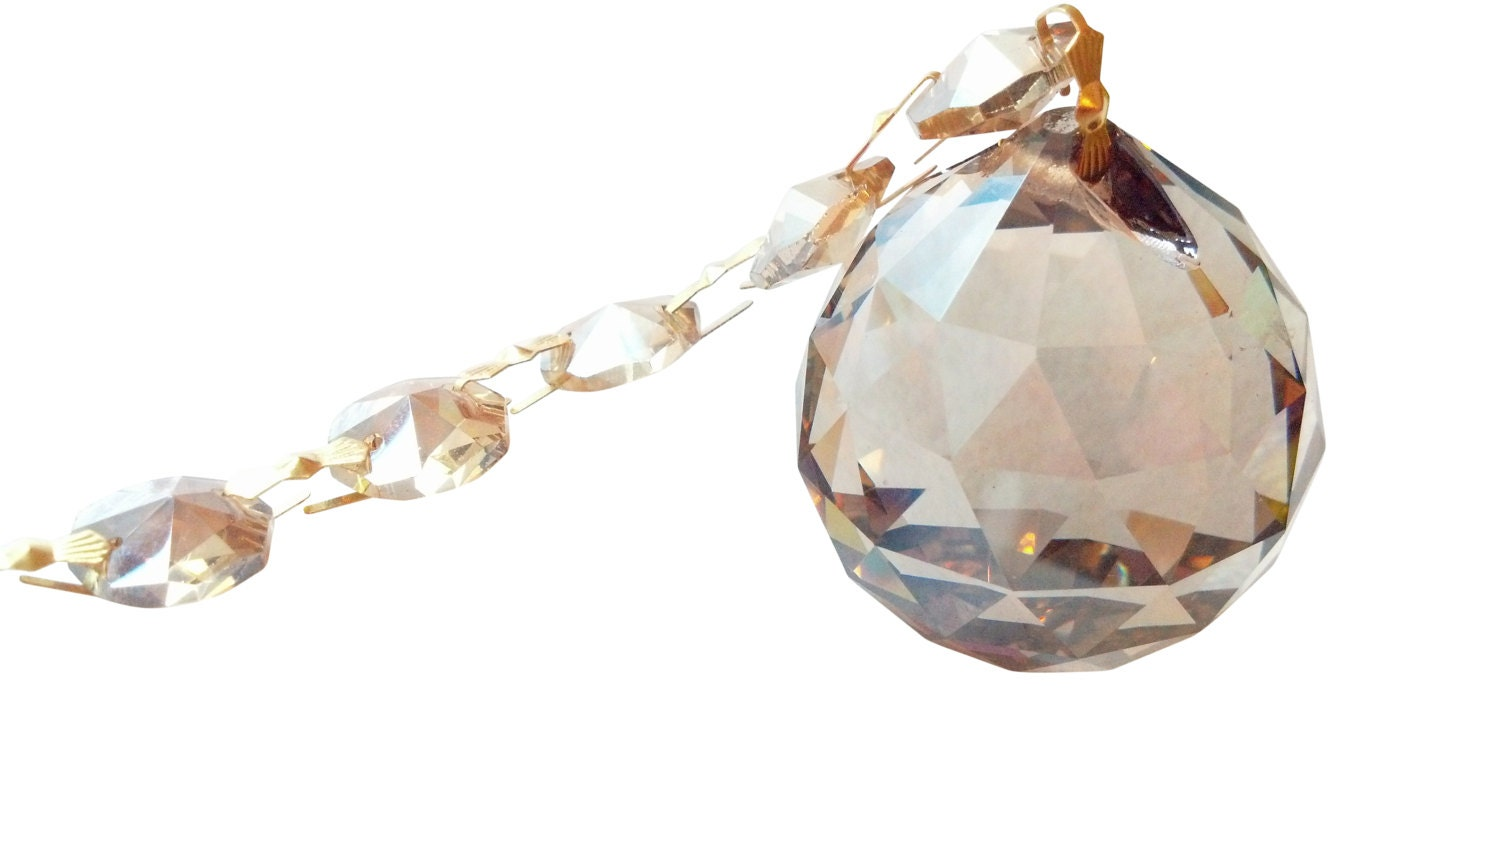 40mm Champagne Ball Ornament Chandelier Crystal Prisms ...